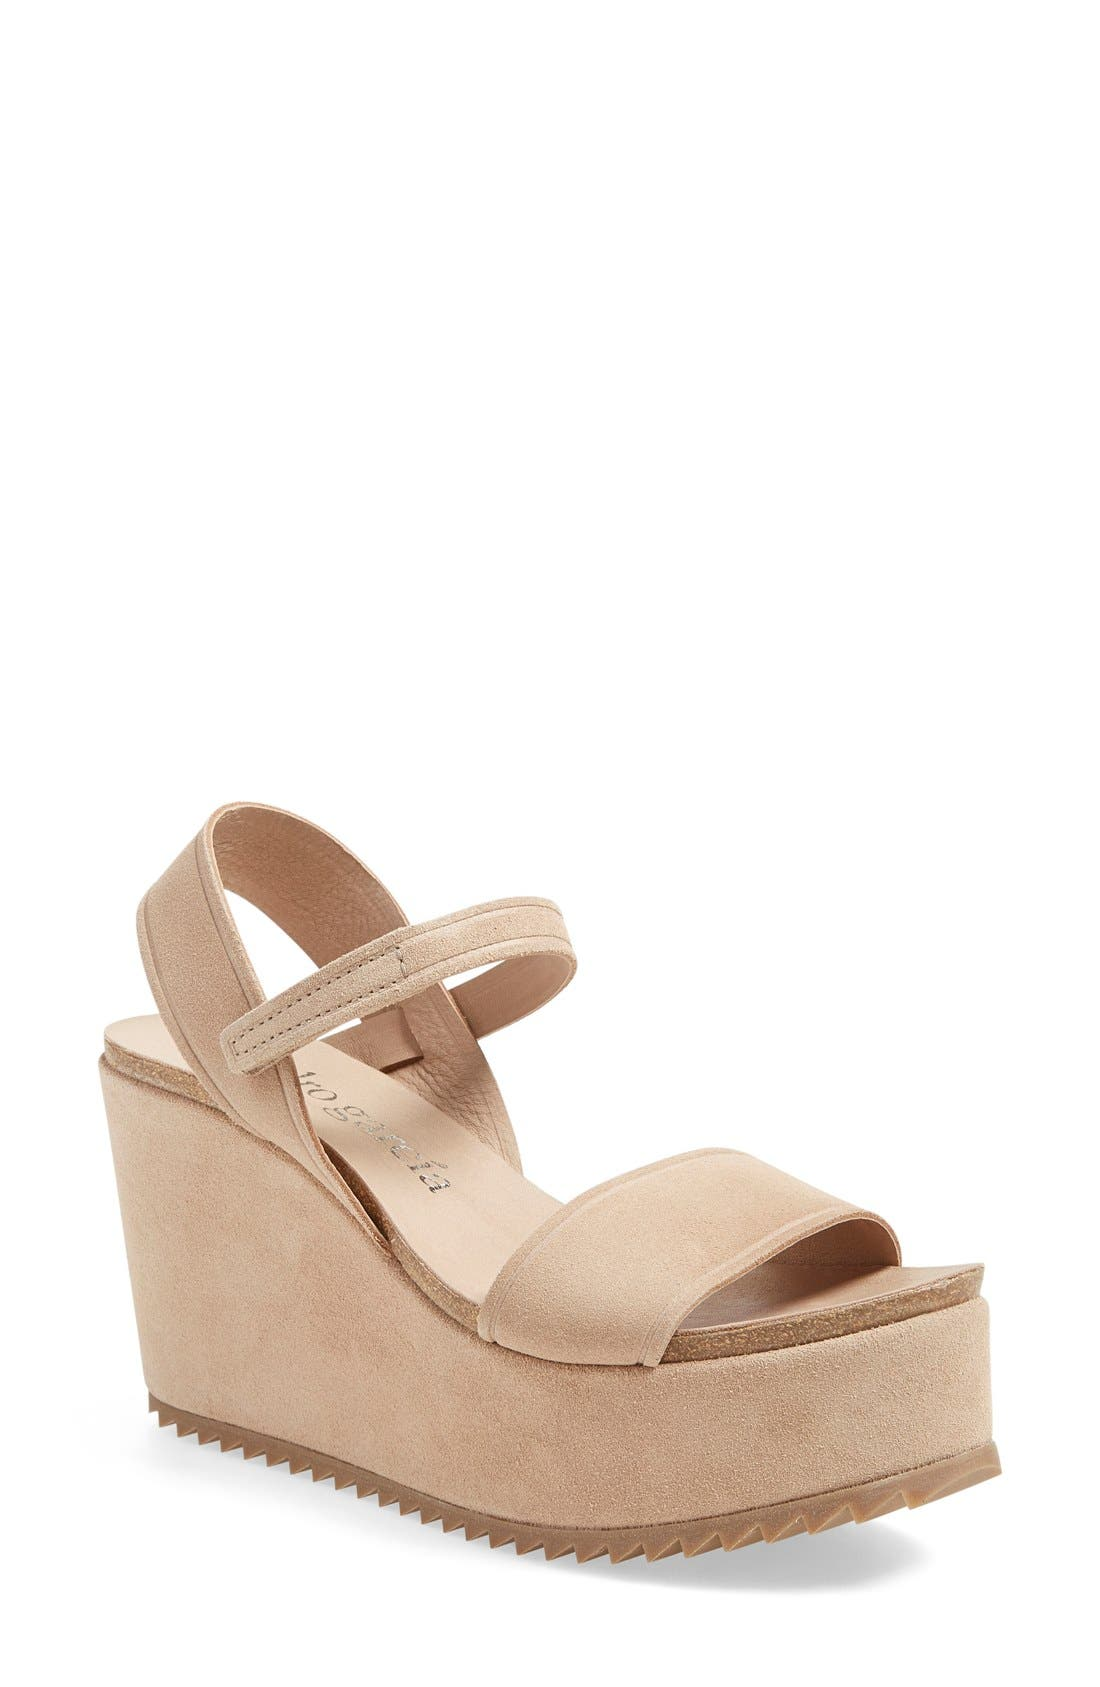 'Dorothy' Wedge,                         Main,                         color, 250